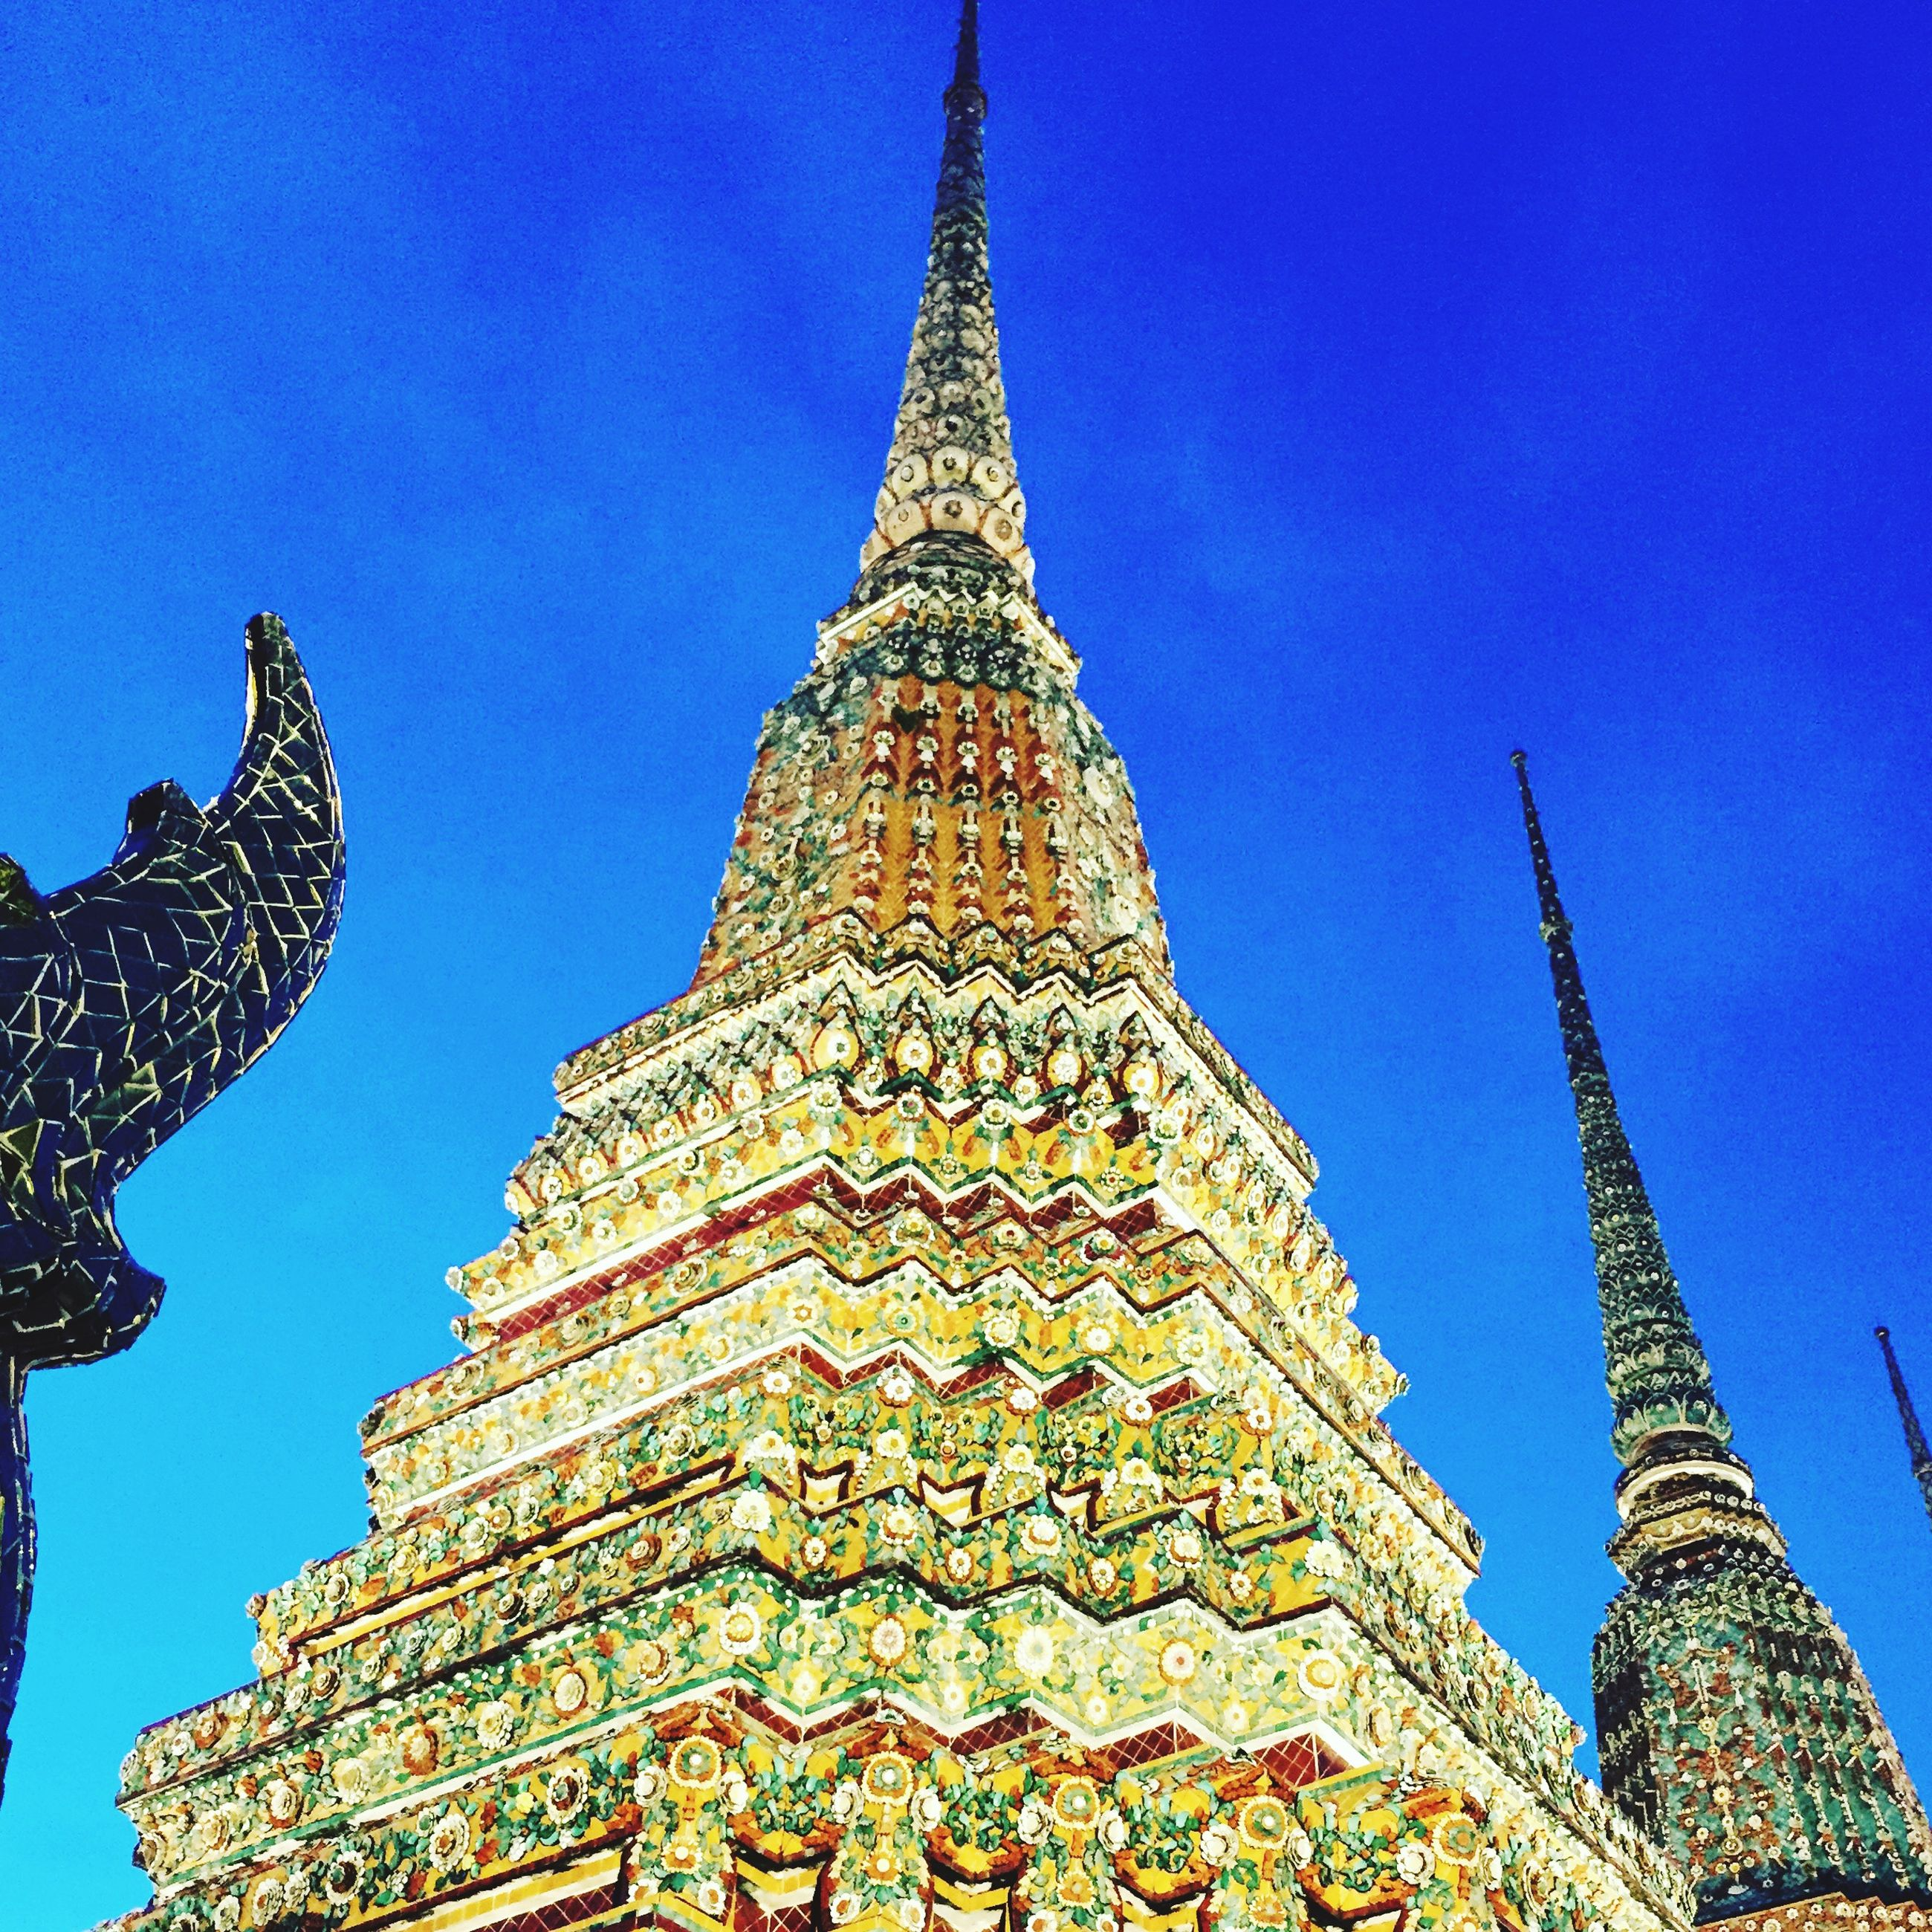 low angle view, blue, clear sky, religion, famous place, gold colored, spirituality, design, place of worship, travel, travel destinations, pattern, cultures, temple - building, tourism, international landmark, art and craft, temple, outdoors